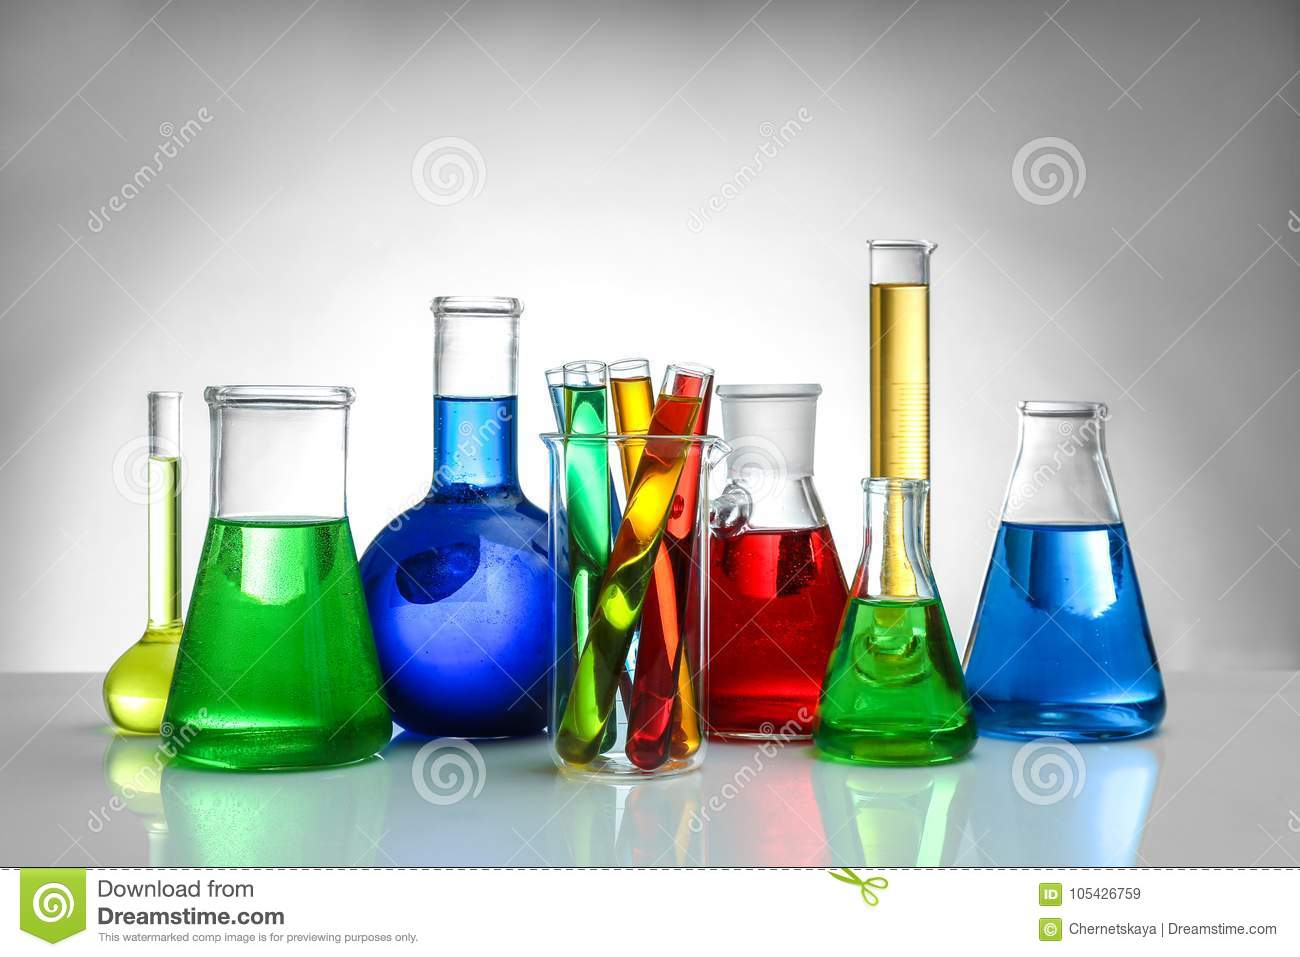 Chemical flasks and test-tubes on background